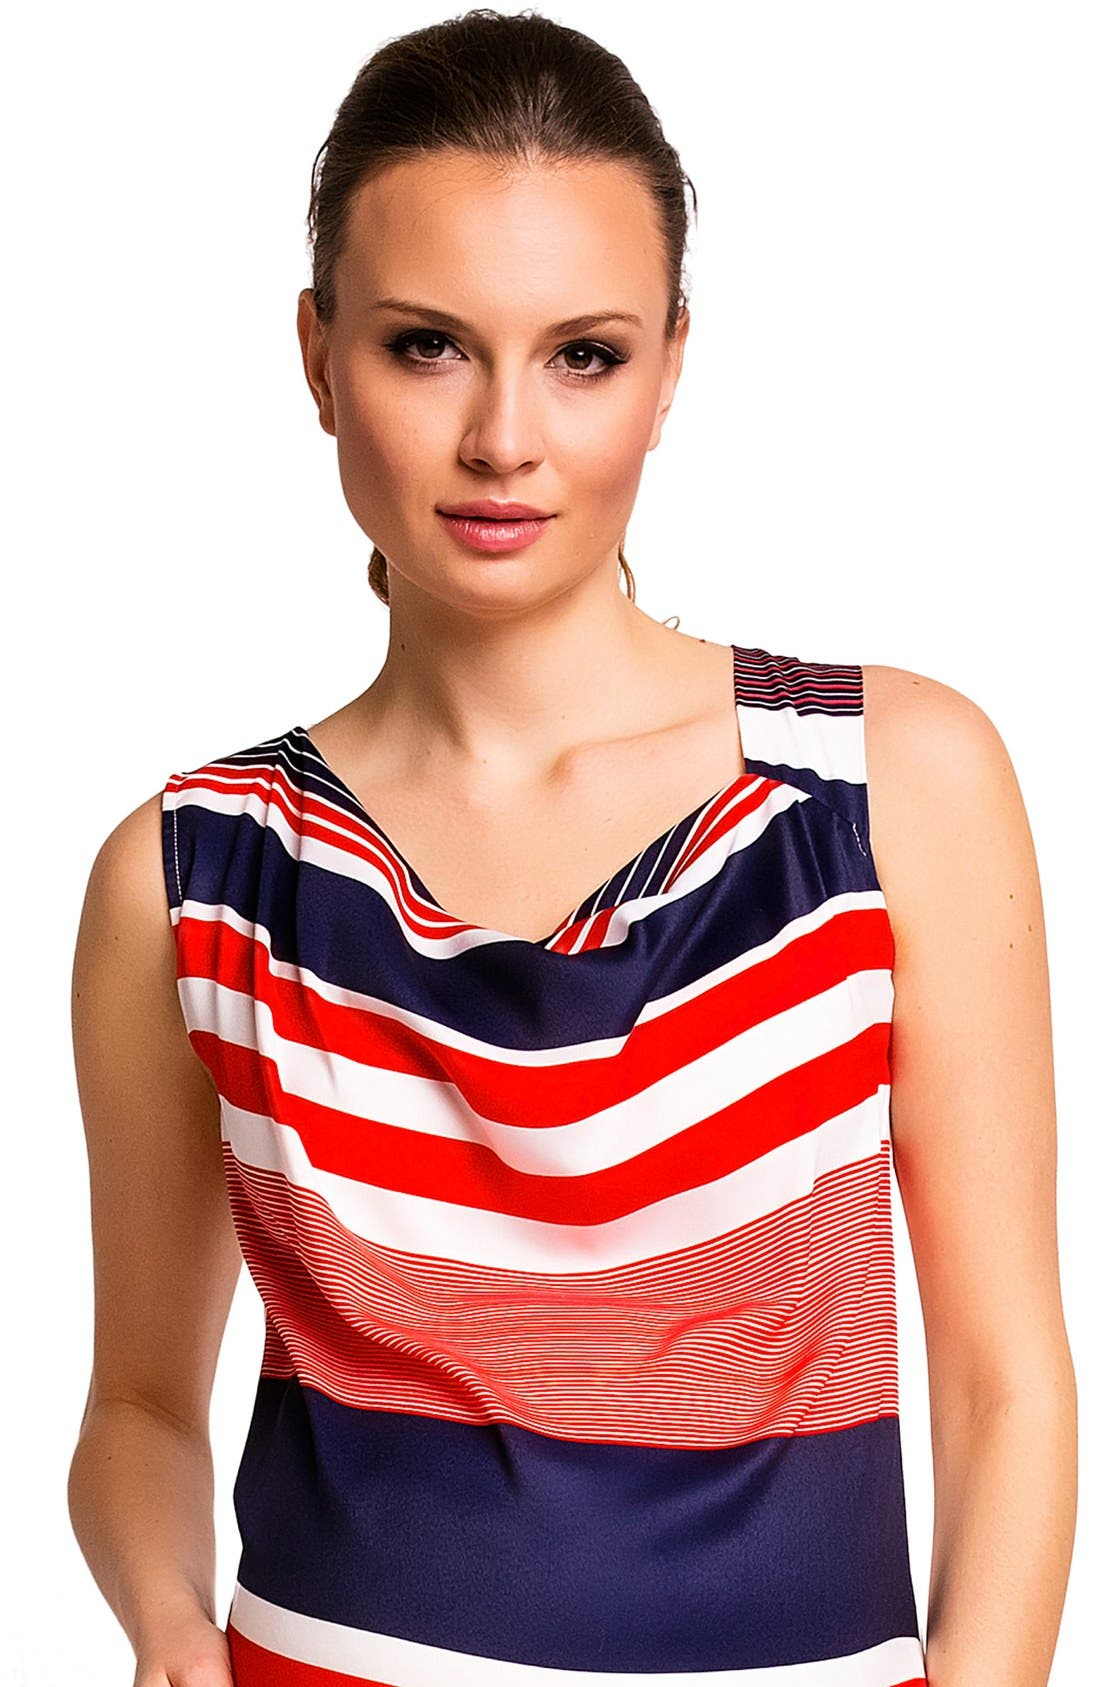 'Fialka' Maternity Top,                             Alternate thumbnail 7, color,                             Red/Blue Stripes